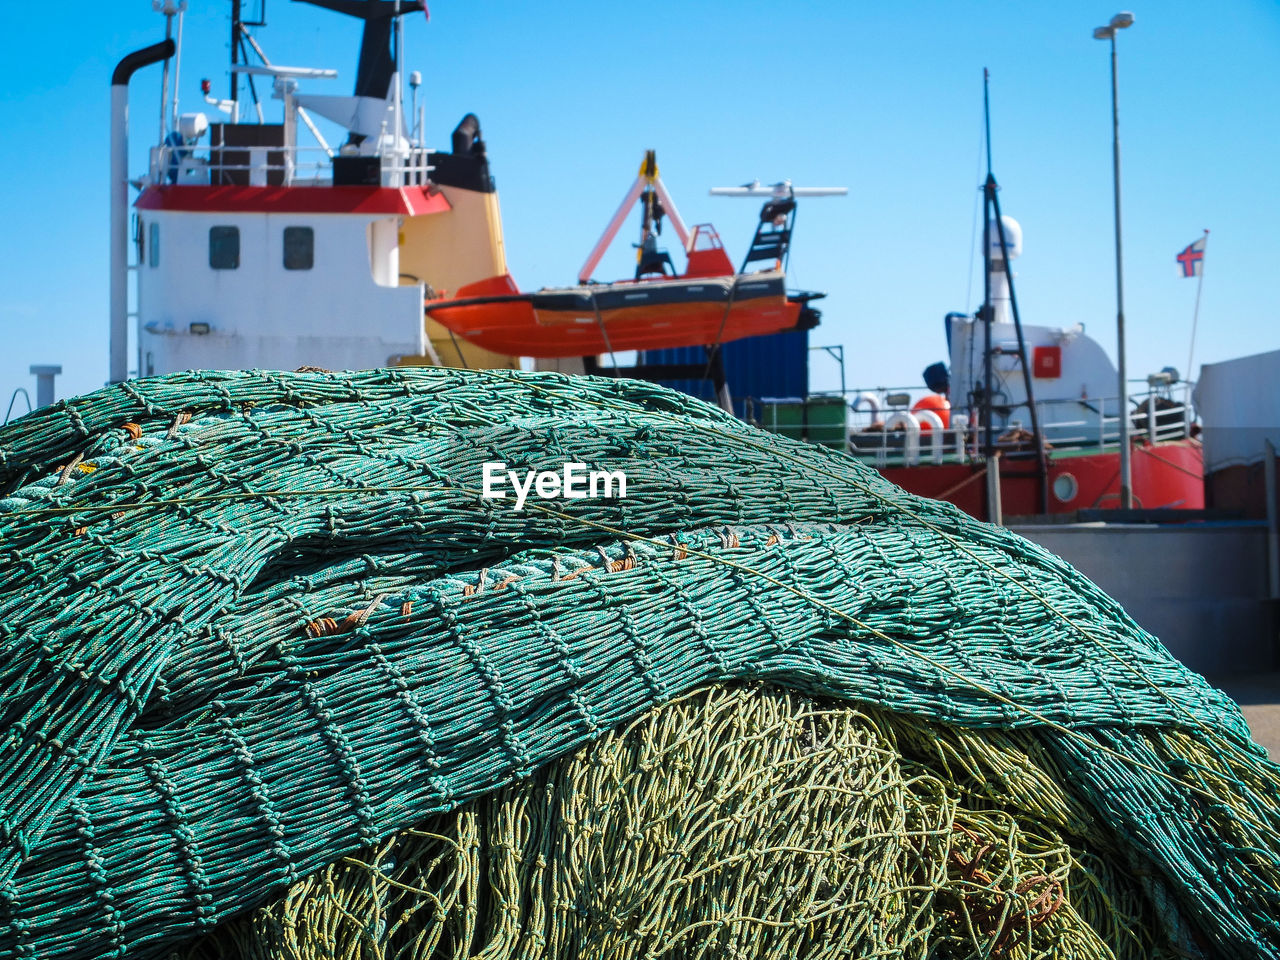 Fishing nets by boats at harbor against sky